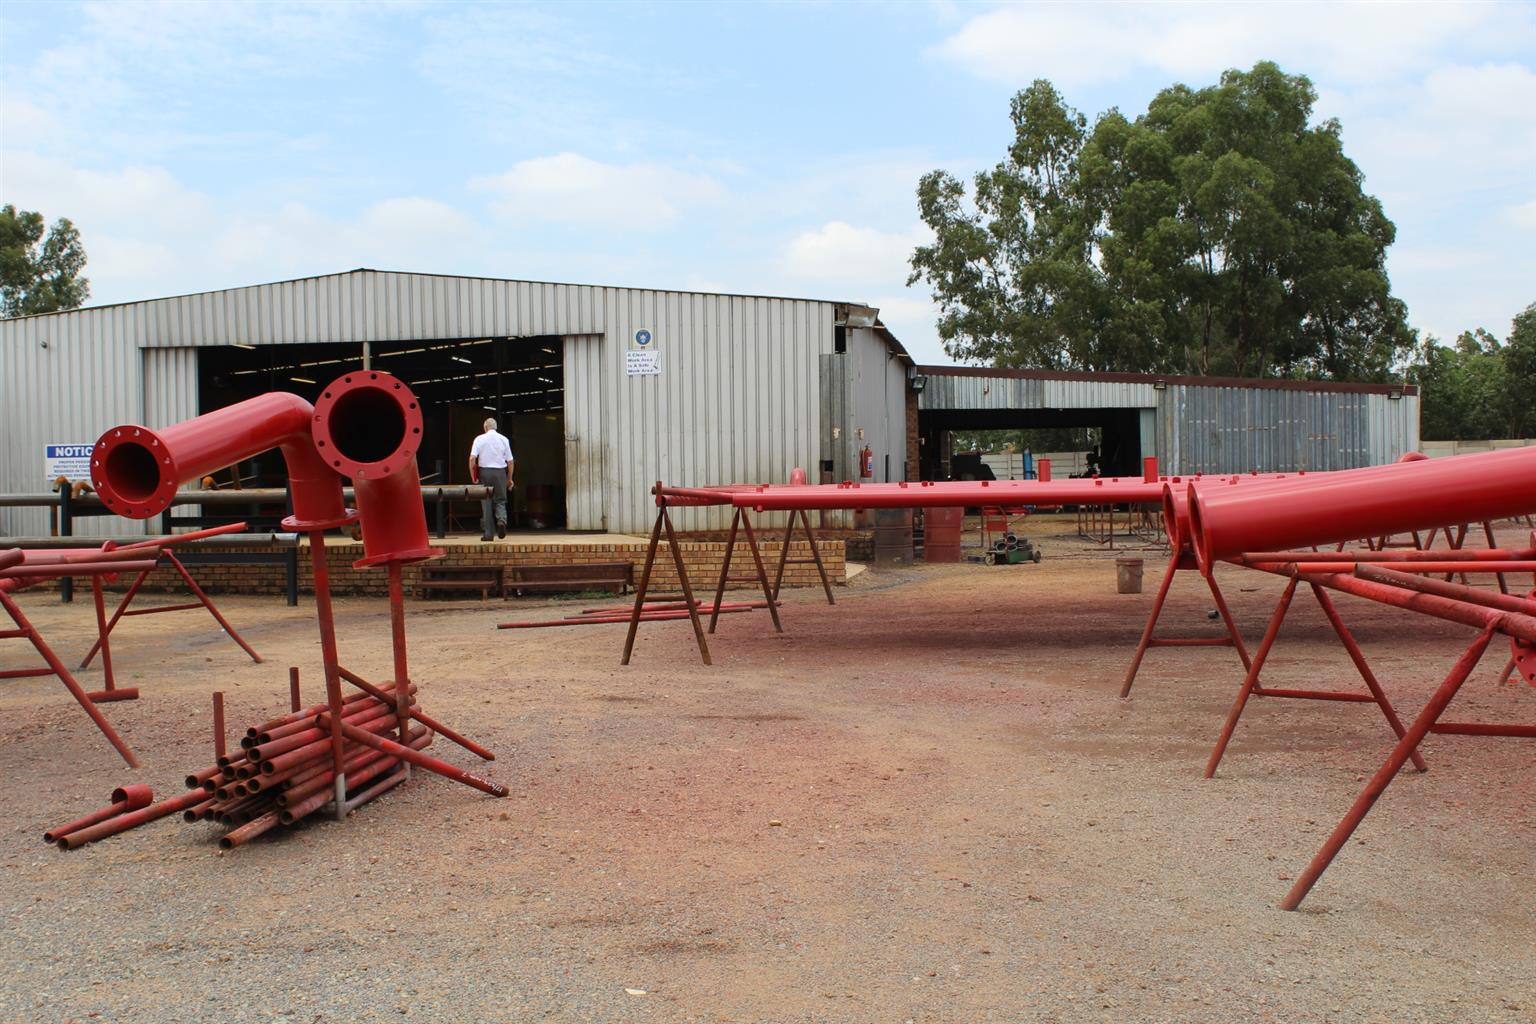 BENONI-LIGHT INDUSTRIAL ZONED - 2Ha--APPROX 1450  SqM WORKSHOP UNDER-ROOF PLUS!!